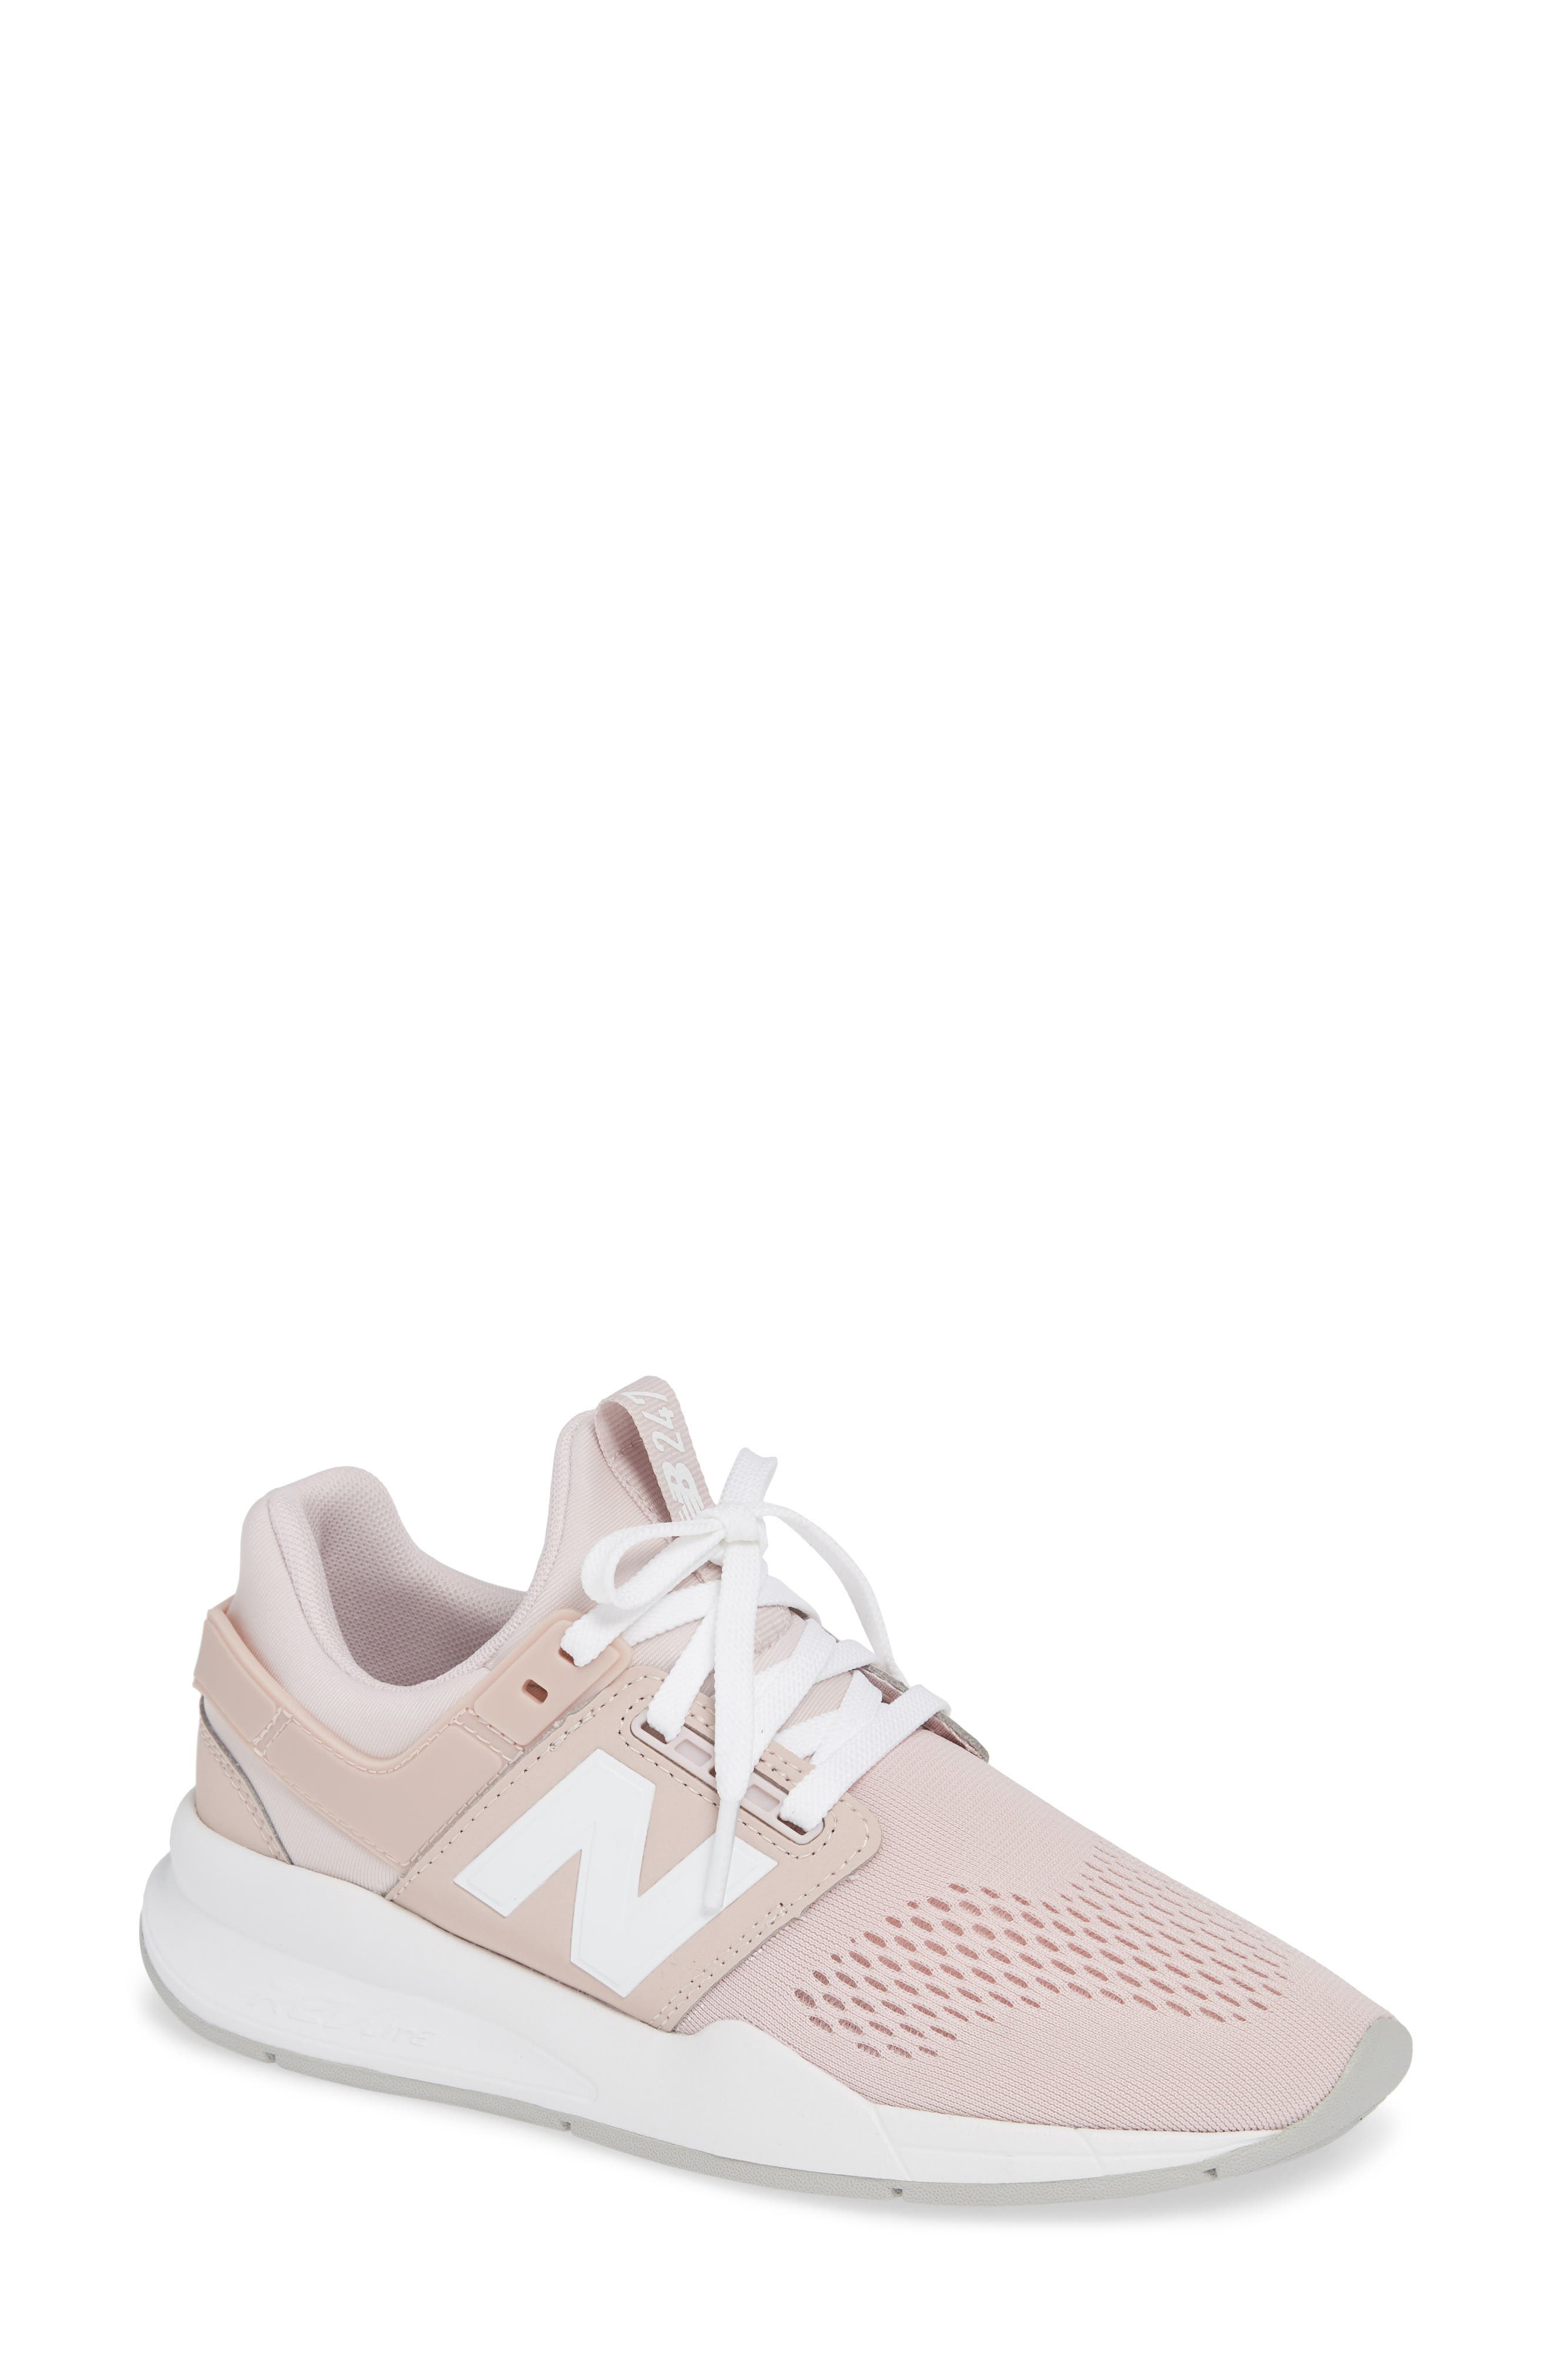 247 Sneaker,                         Main,                         color, CONCH SHELL